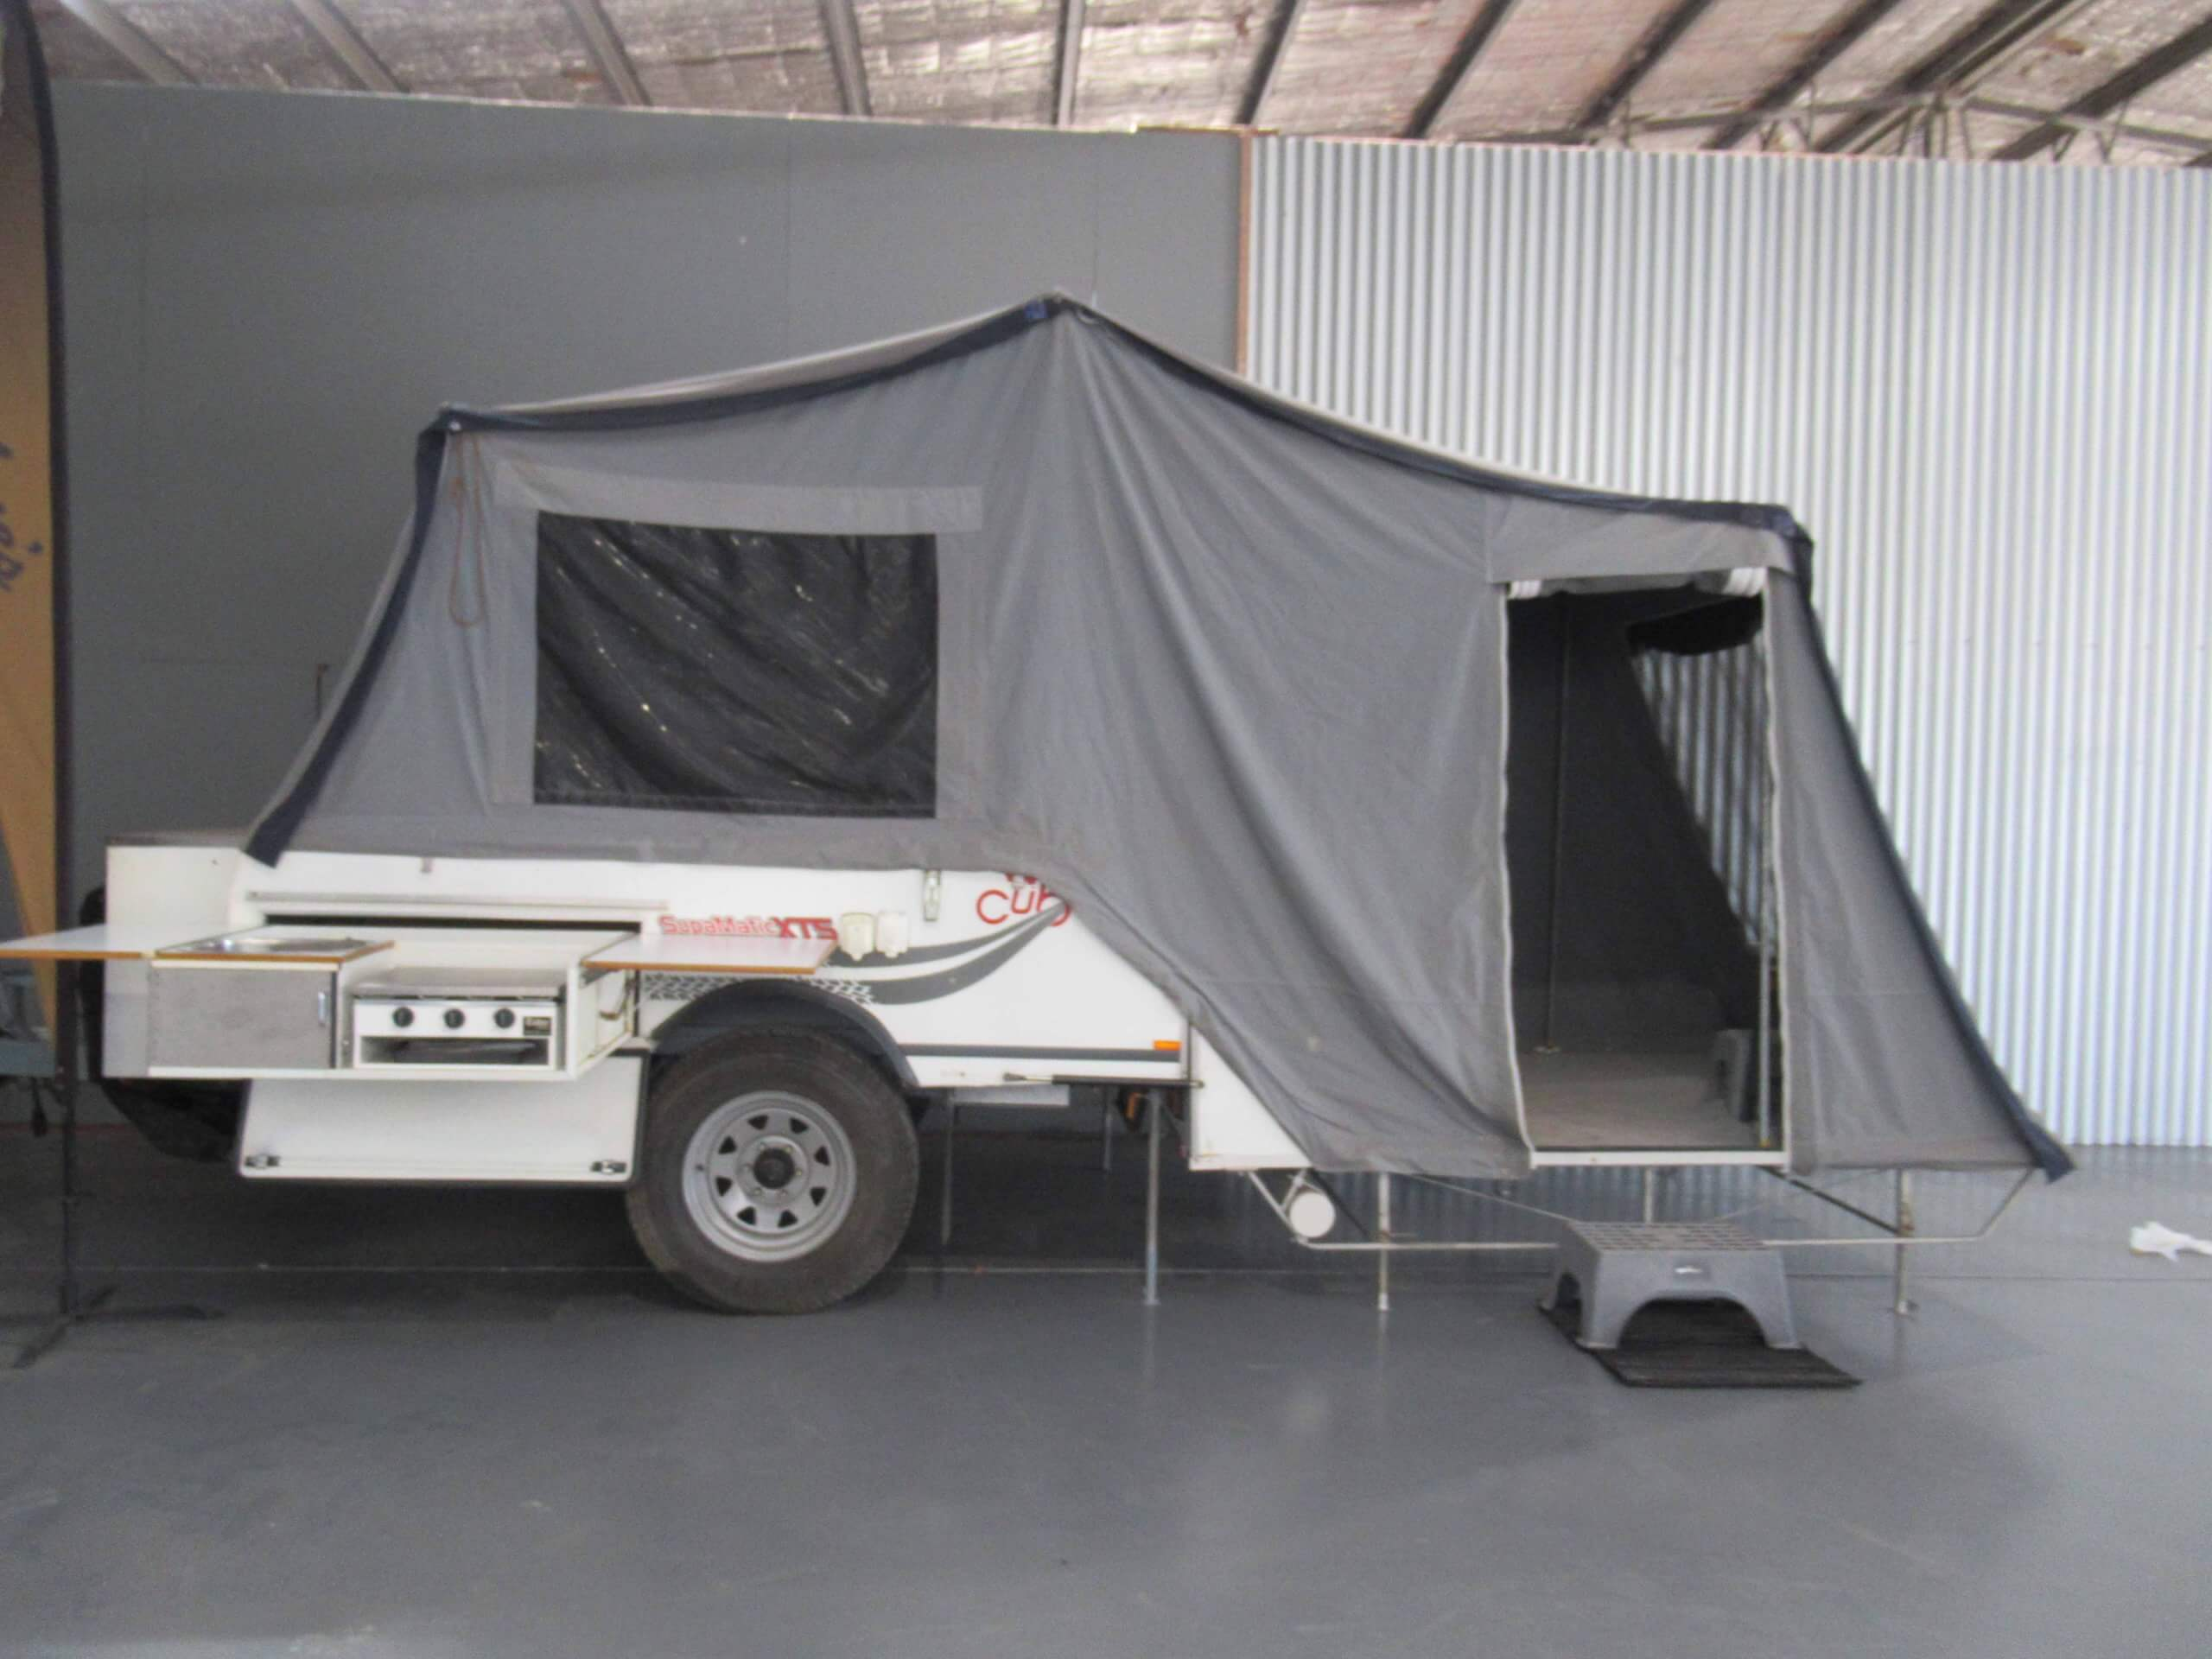 Donehues Leisure Used Cub supamatic Camper Off road Mt Gambier 21960M 7